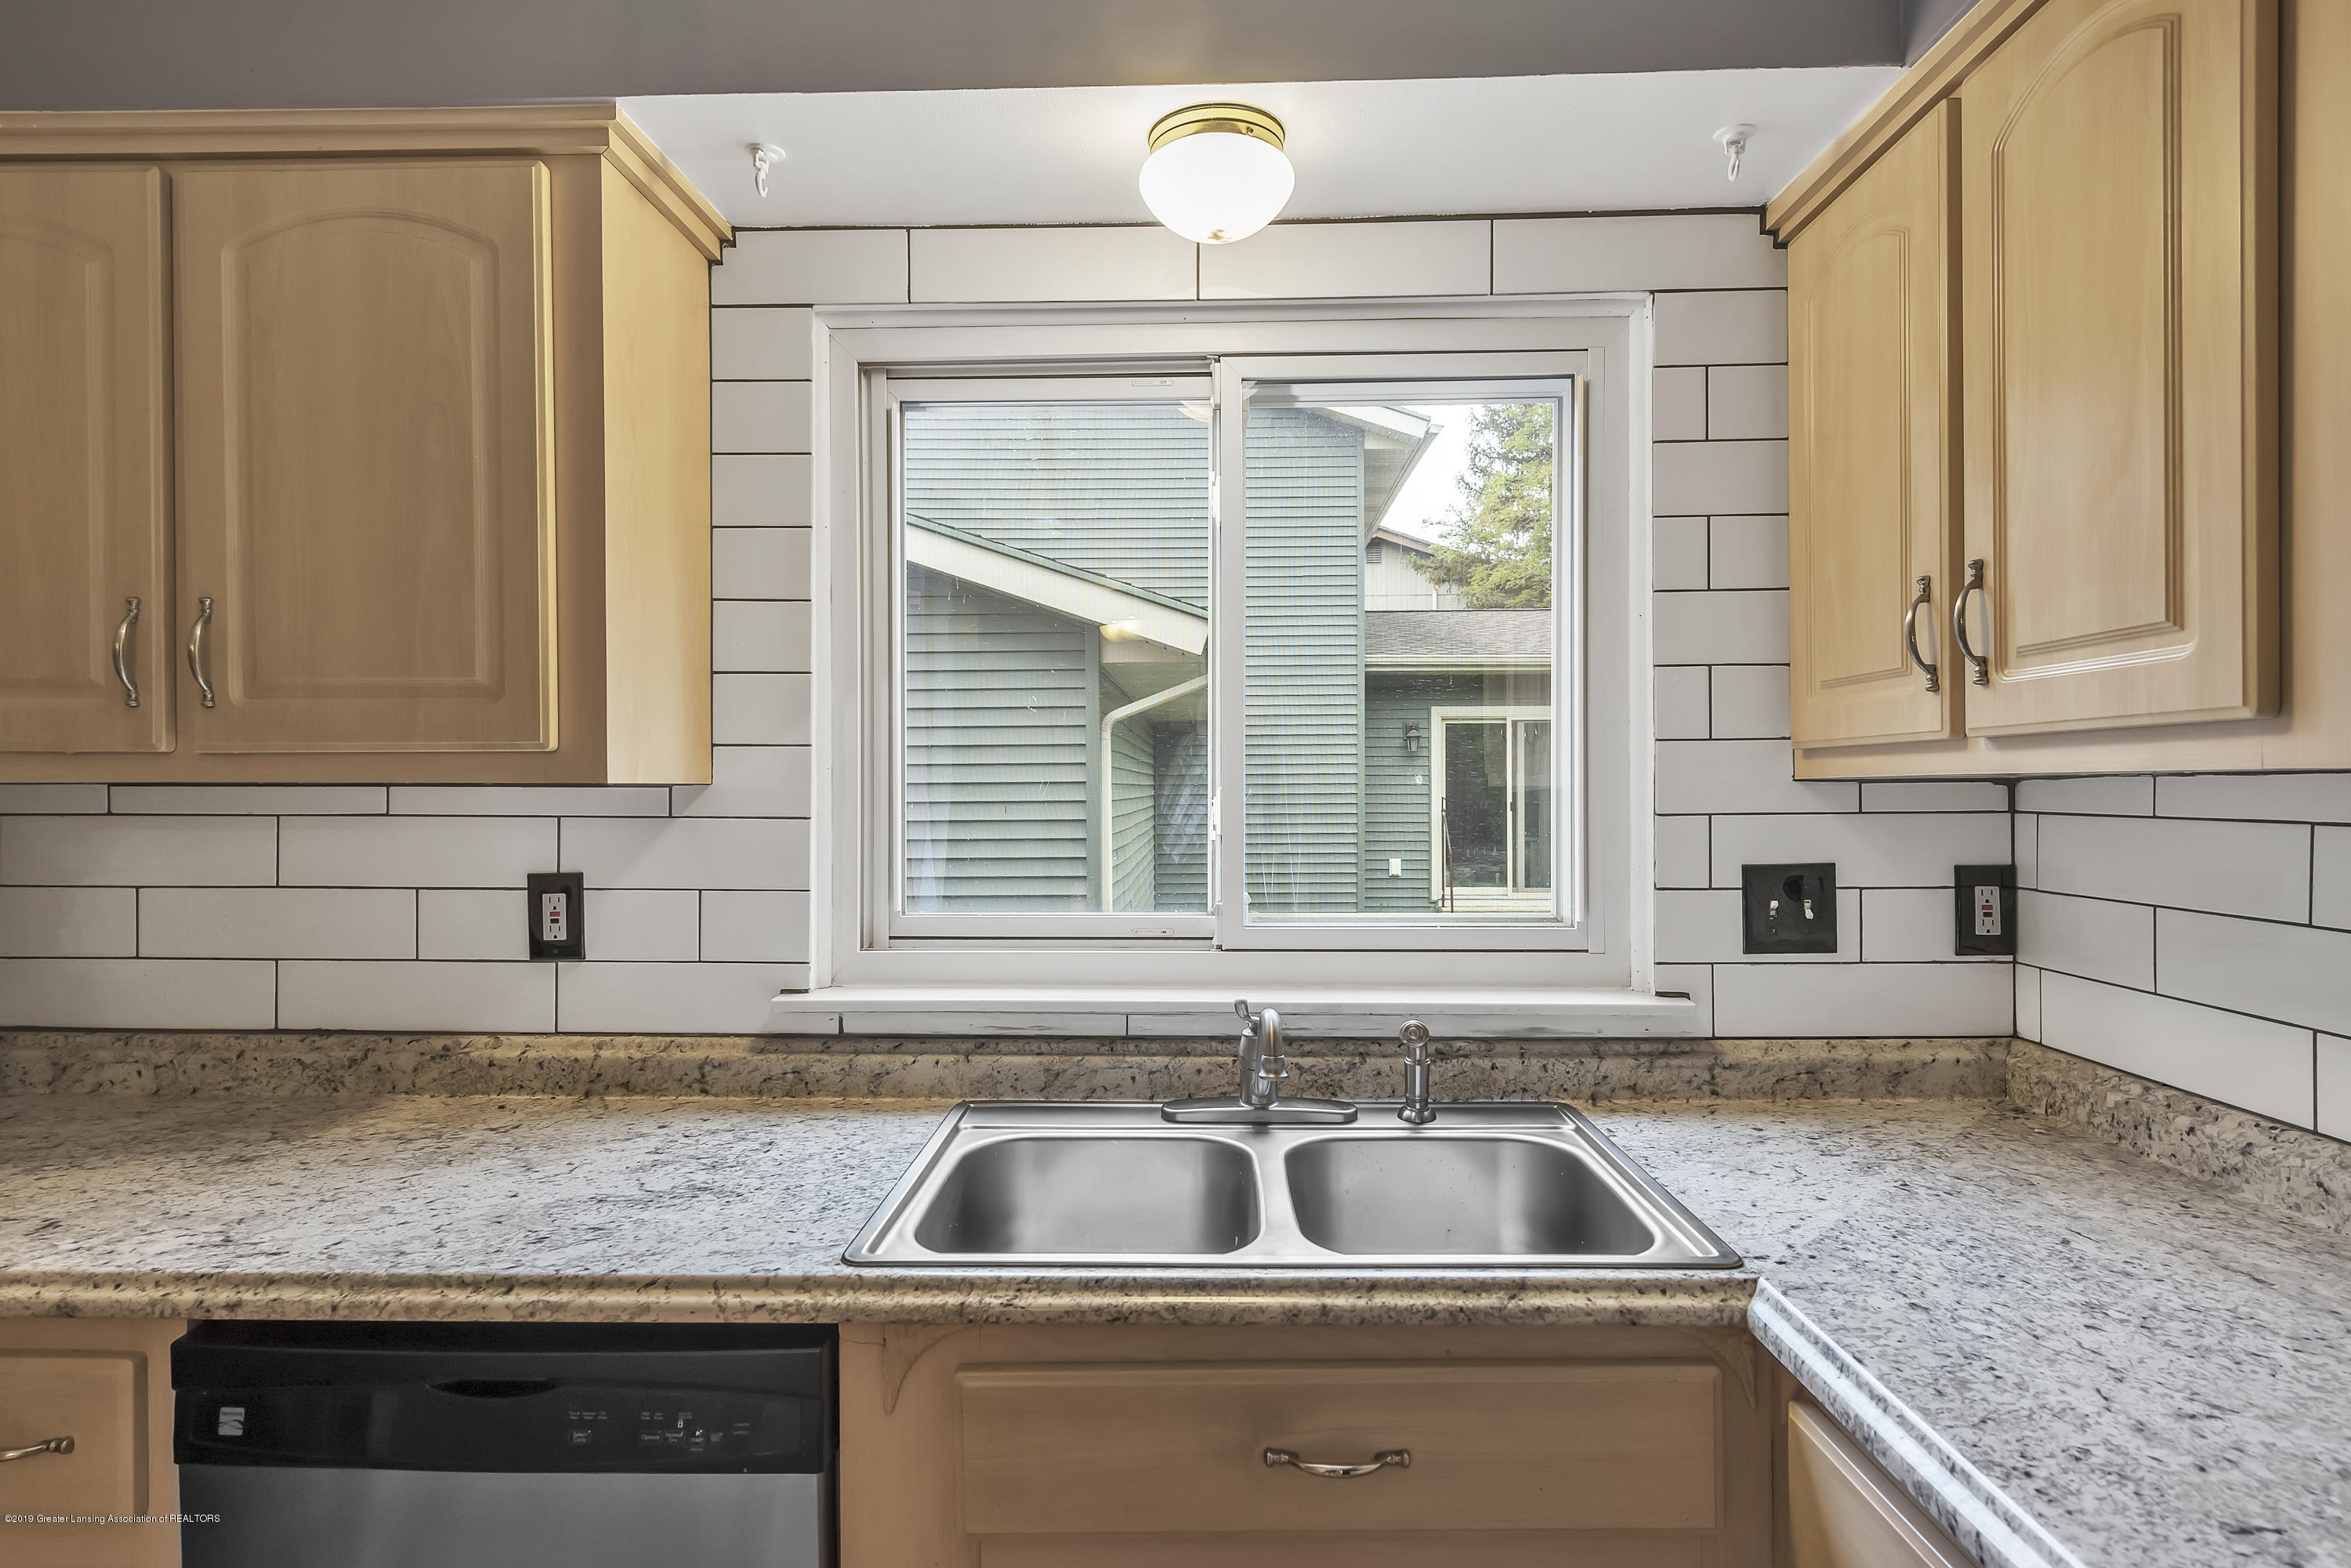 1336 Chartwell Dual Carriage Way - 1336-Chartwell-Duel-Carriage-Way-South-E - 16